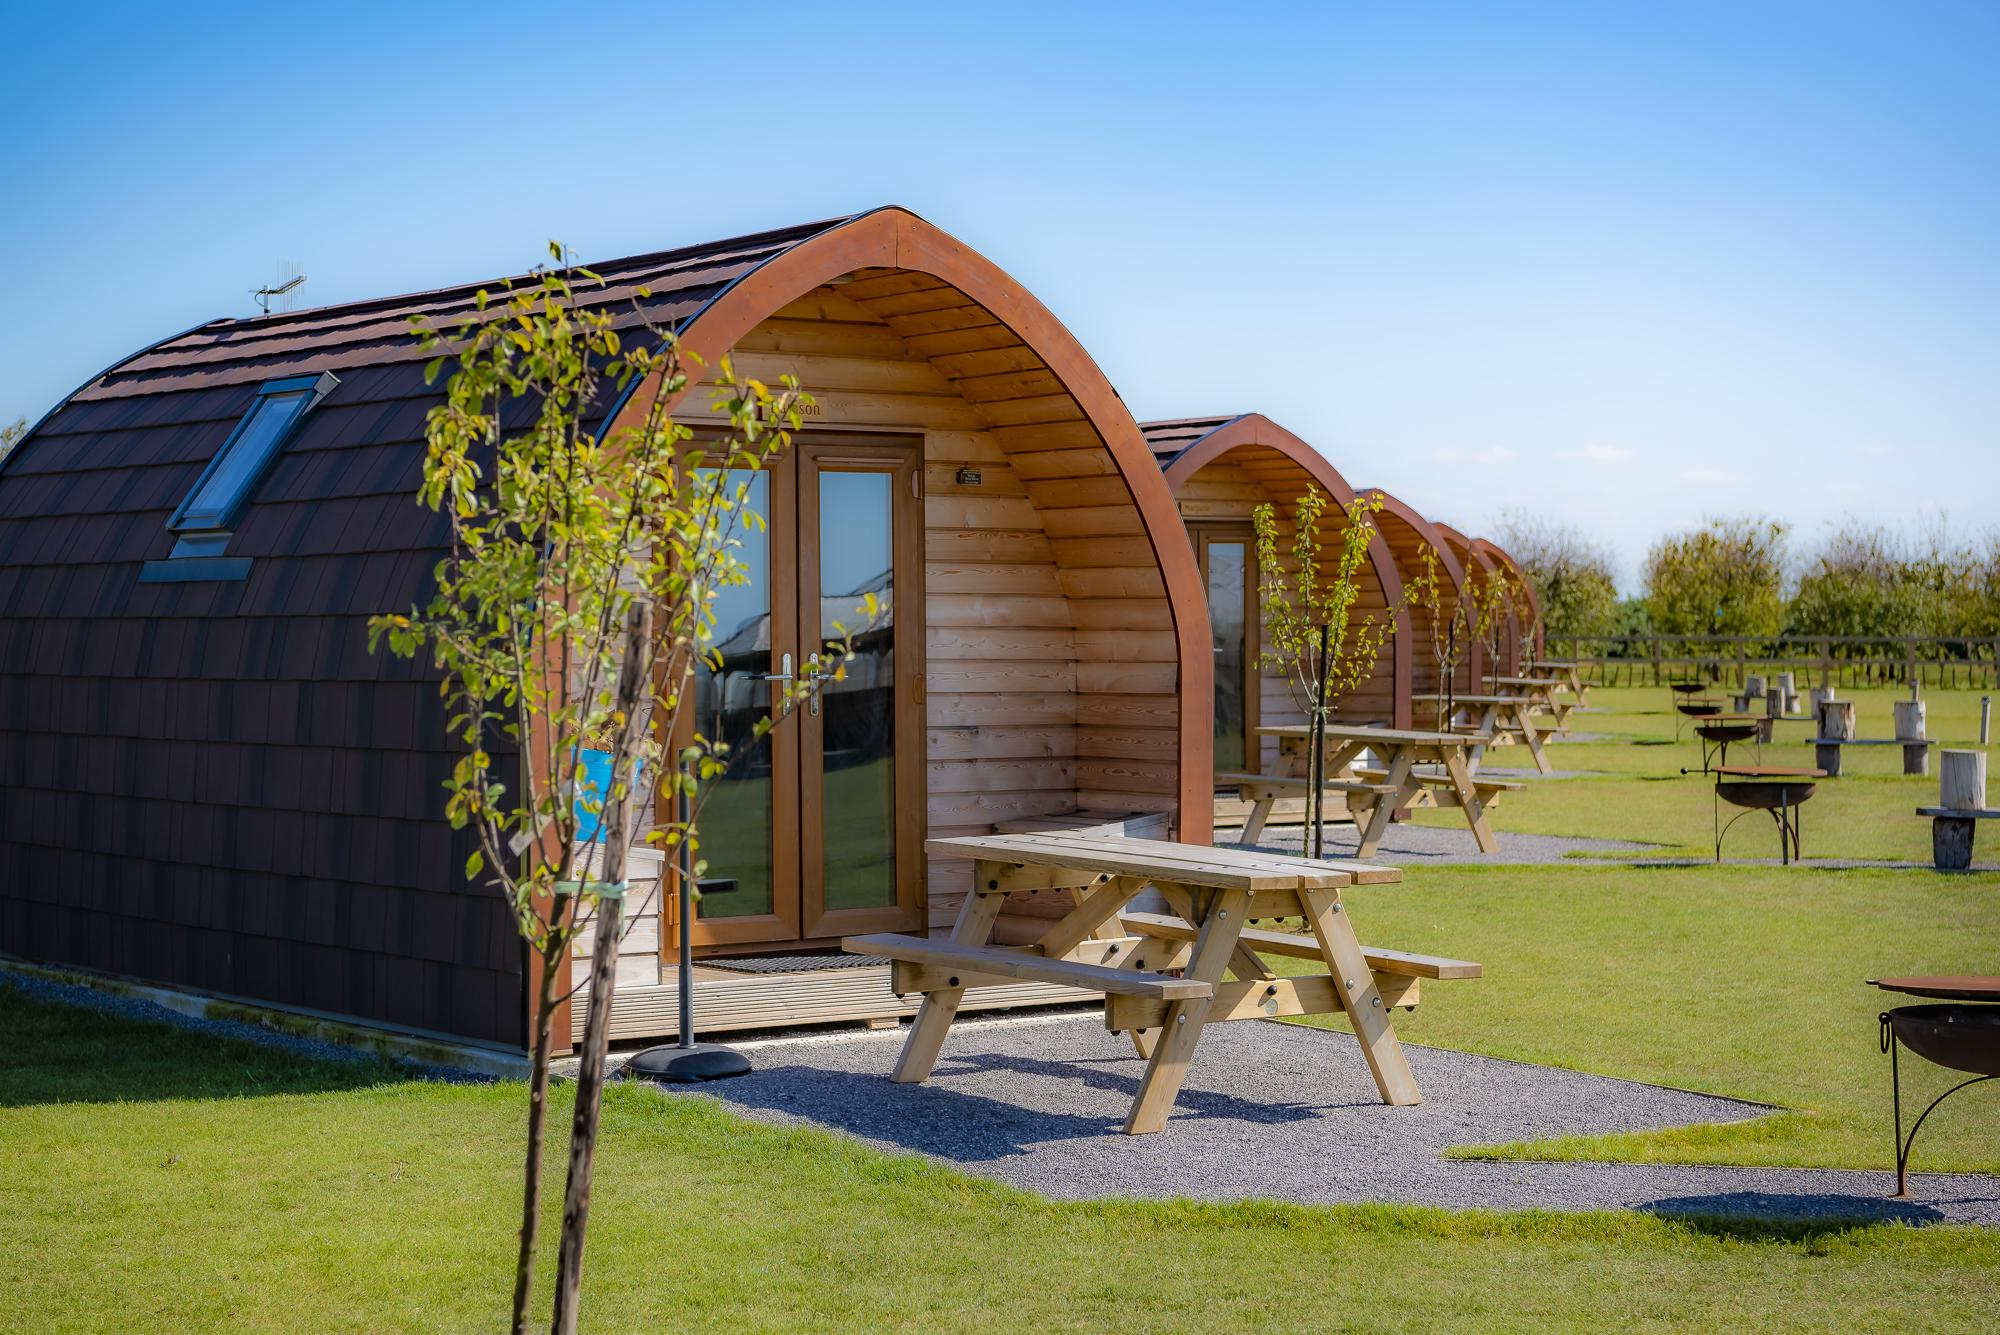 Glamping in Maidstone holidays at Glampingly